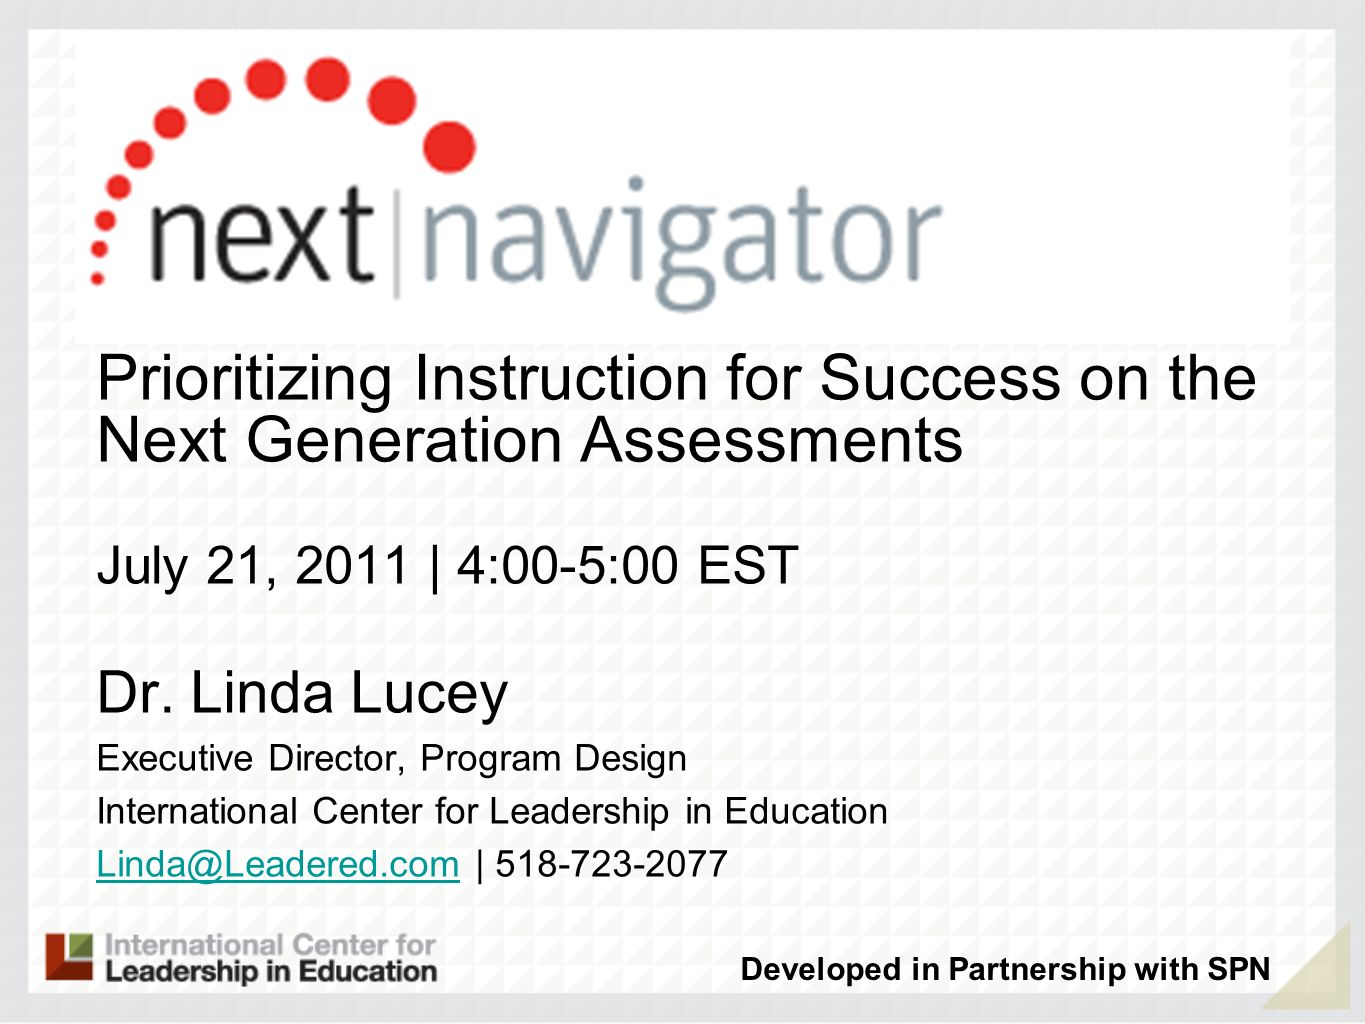 Prioritizing Instruction for Success on the Next Generation Assessments July 21, 2011 | 4:00-5:00 EST Dr. Linda Lucey Executive Director, Program Desi